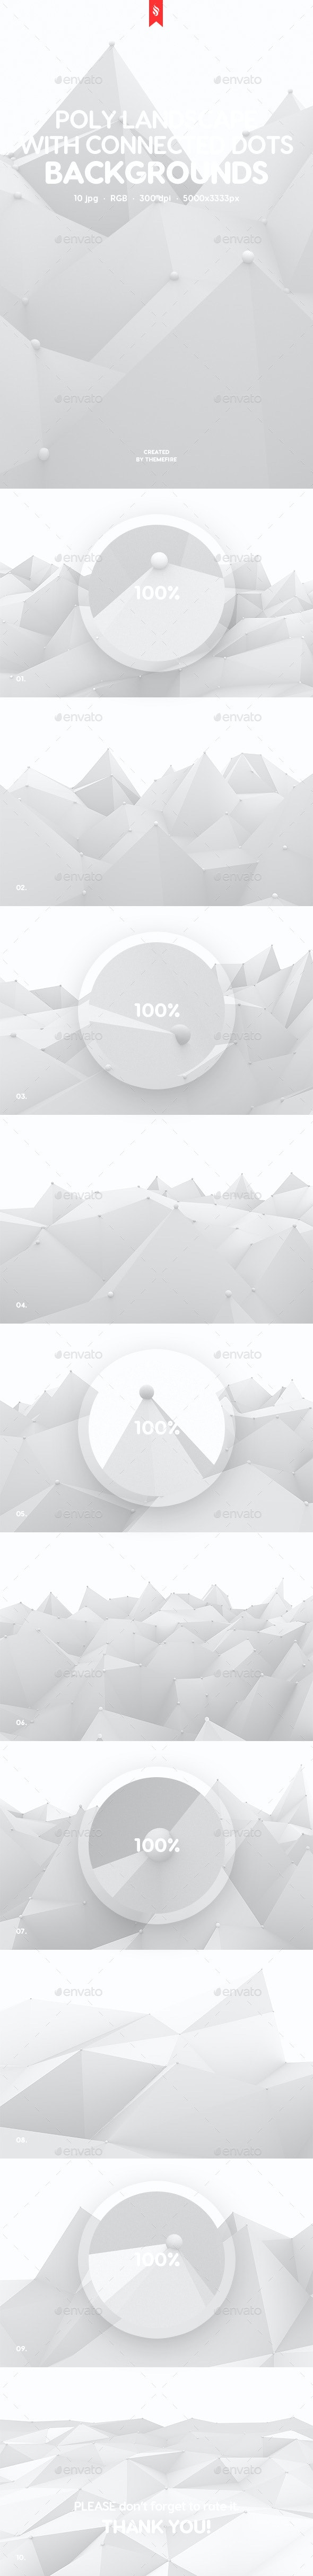 Polygonal Landscape with Connected Dots Backgrounds - Backgrounds Graphics